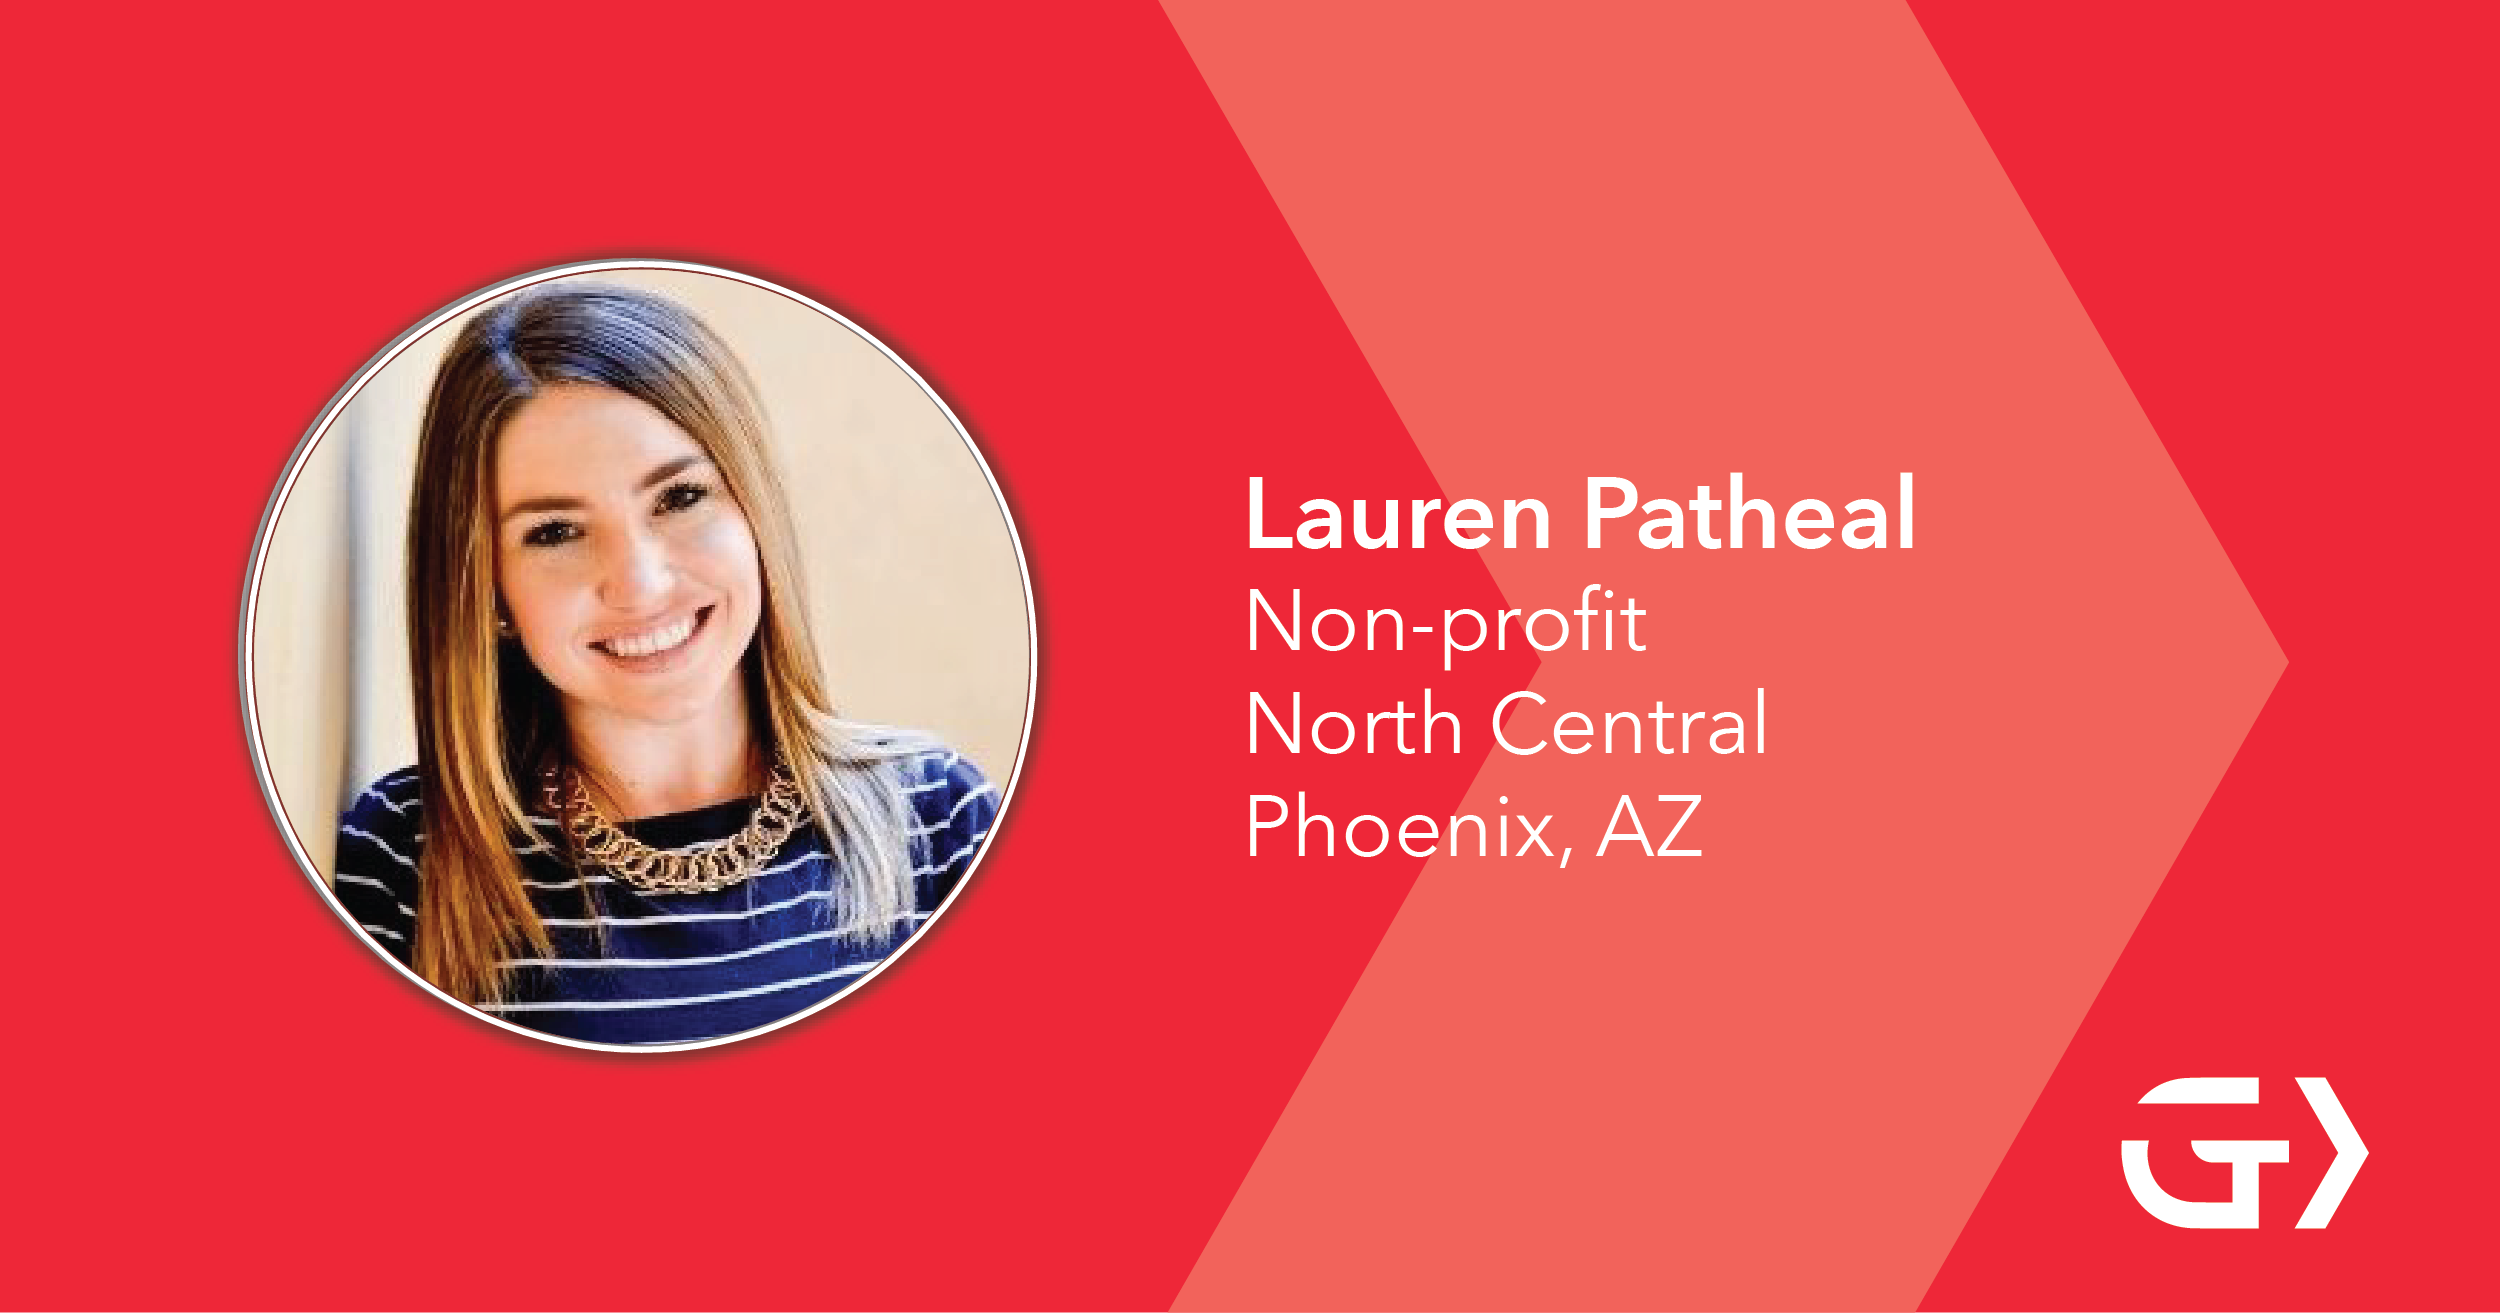 Lauren Patheal said she decided to stay in Greater Phoenix for the beautiful weather and environmental attributes, restaurant and retail options, and reasonable cost of living.